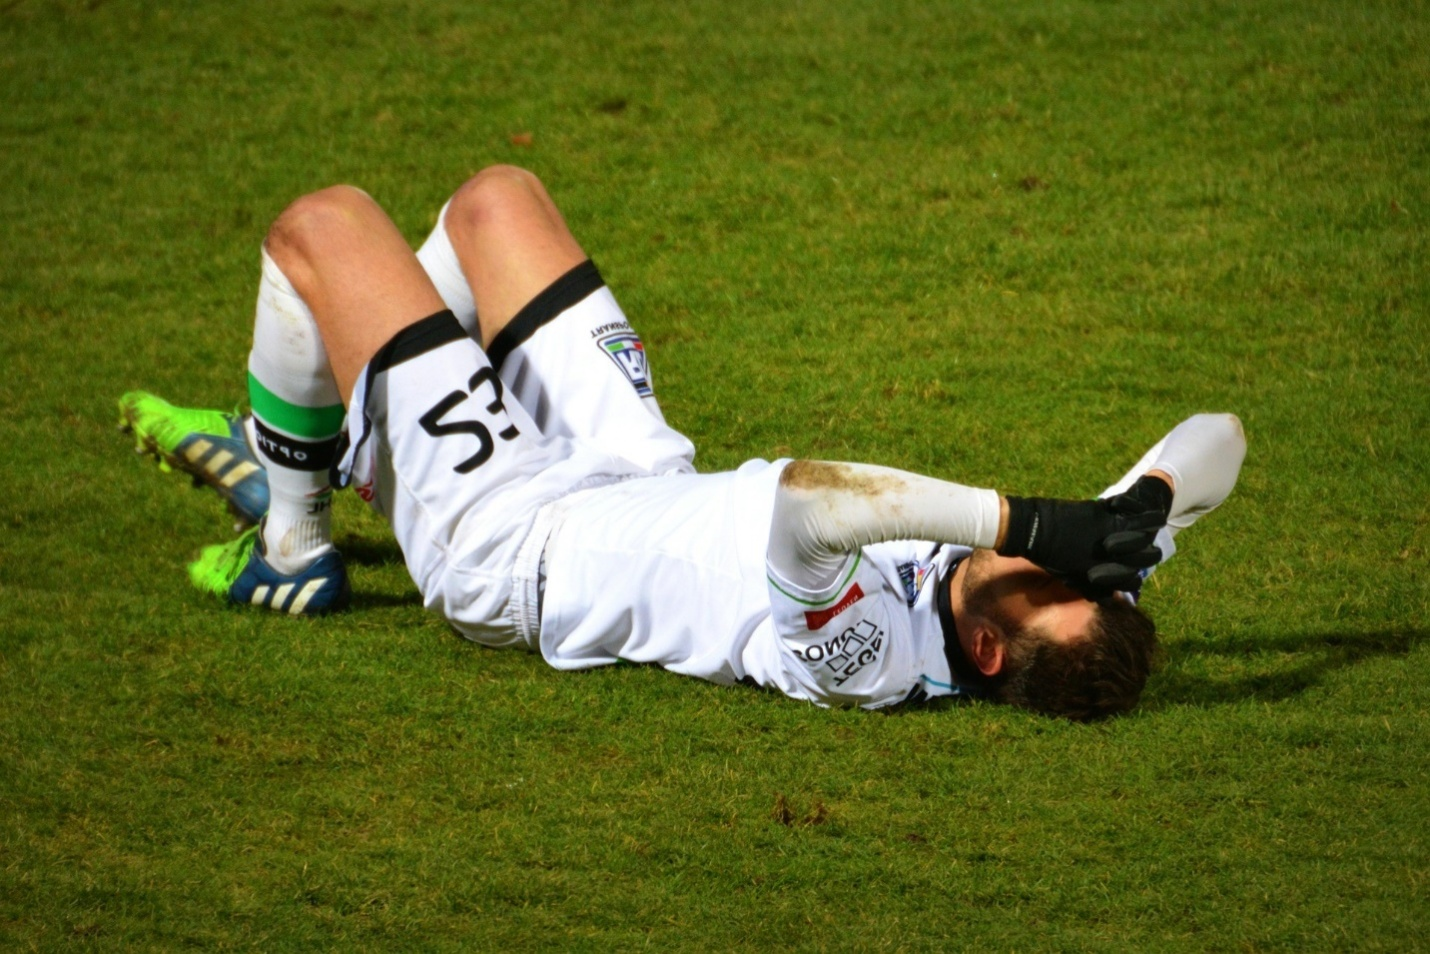 A football player falling on the ground  Description automatically generated with low confidence